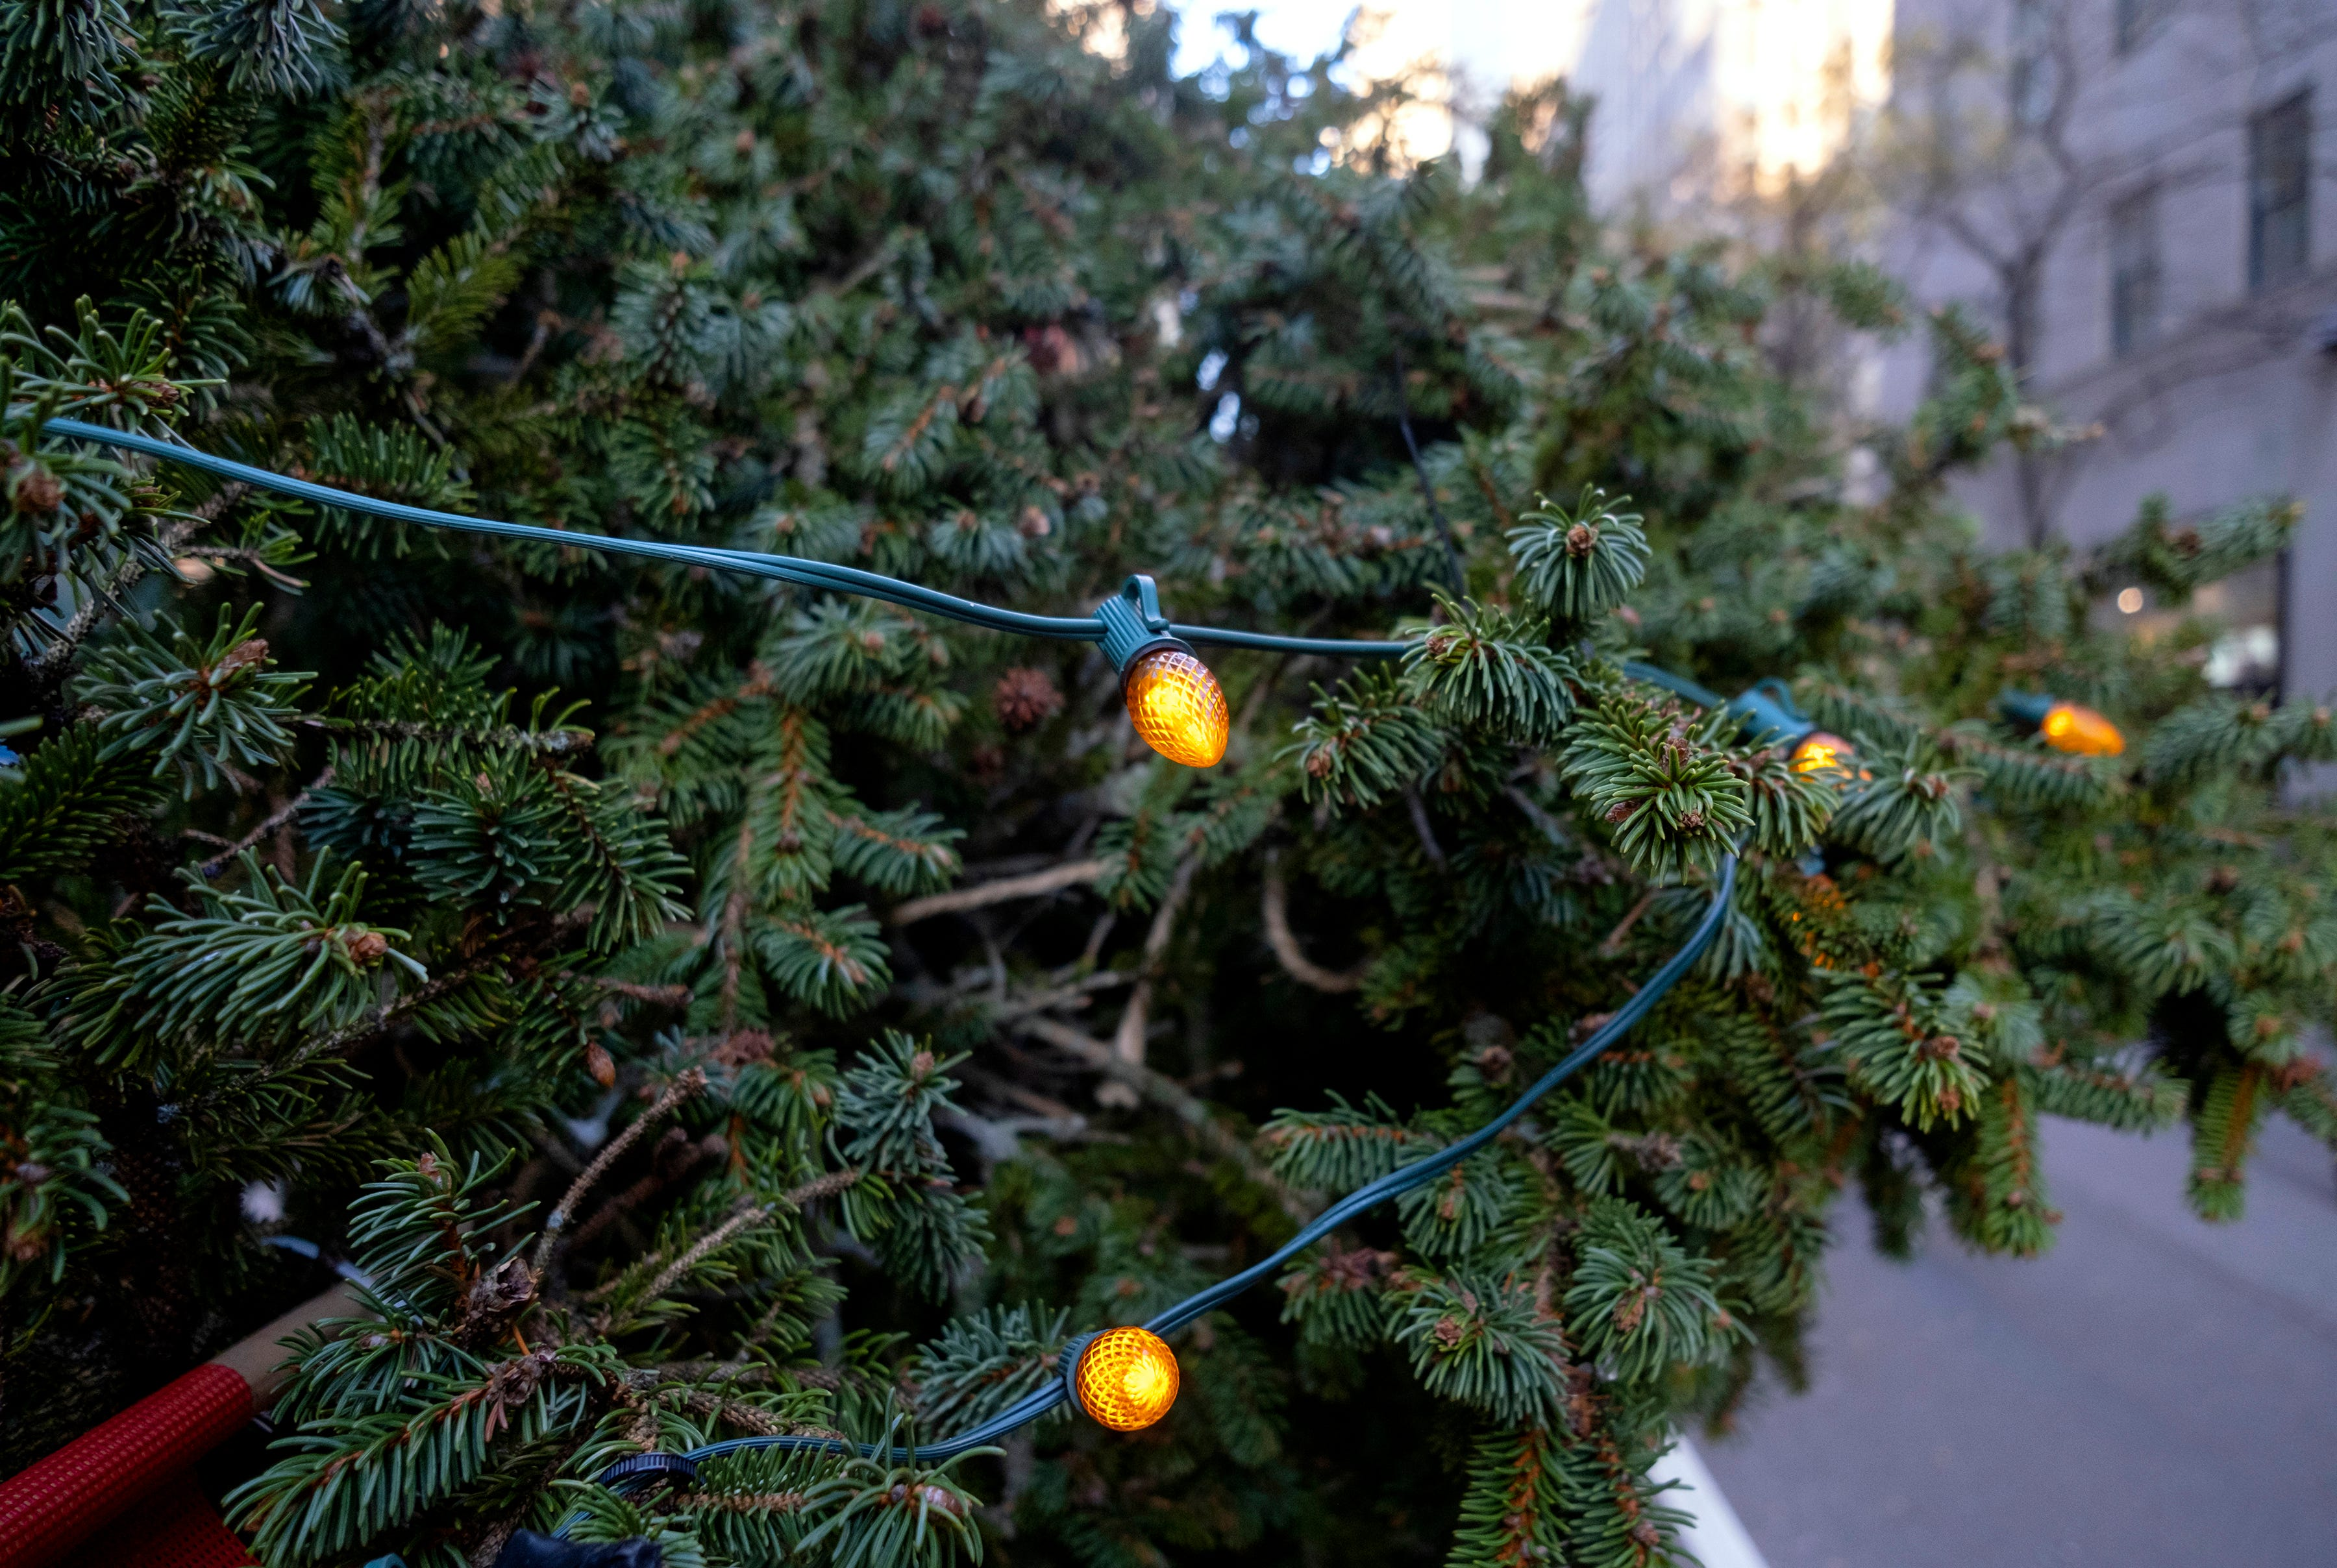 Kicking off the holiday season: How to watch the Rockefeller Center Christmas Tree lighting